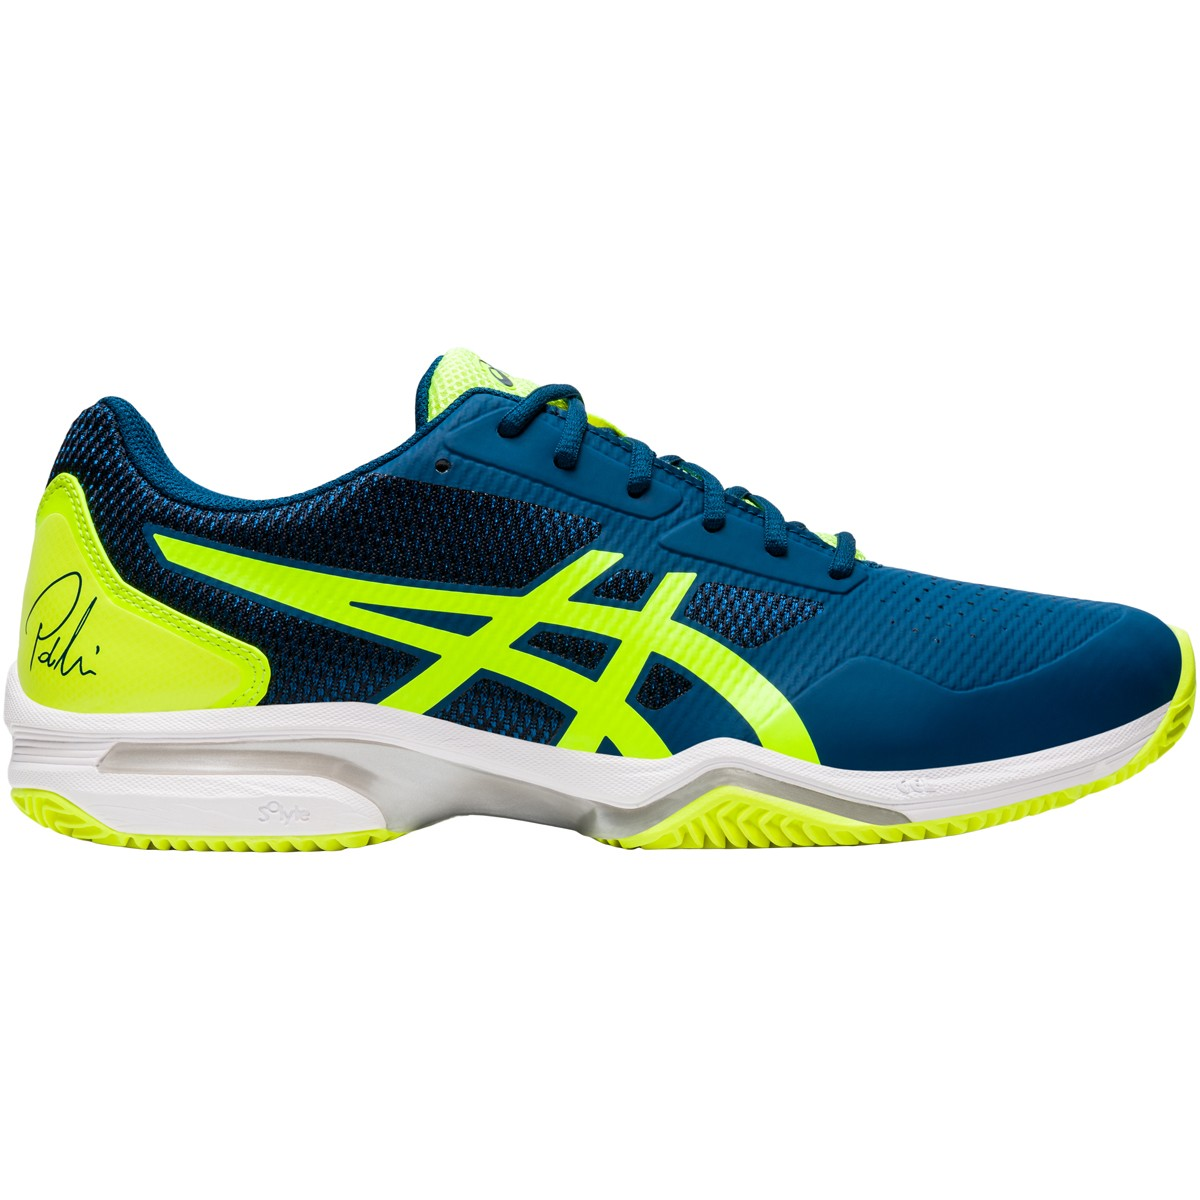 CHAUSSURES ASICS GEL LIMA PADEL 2